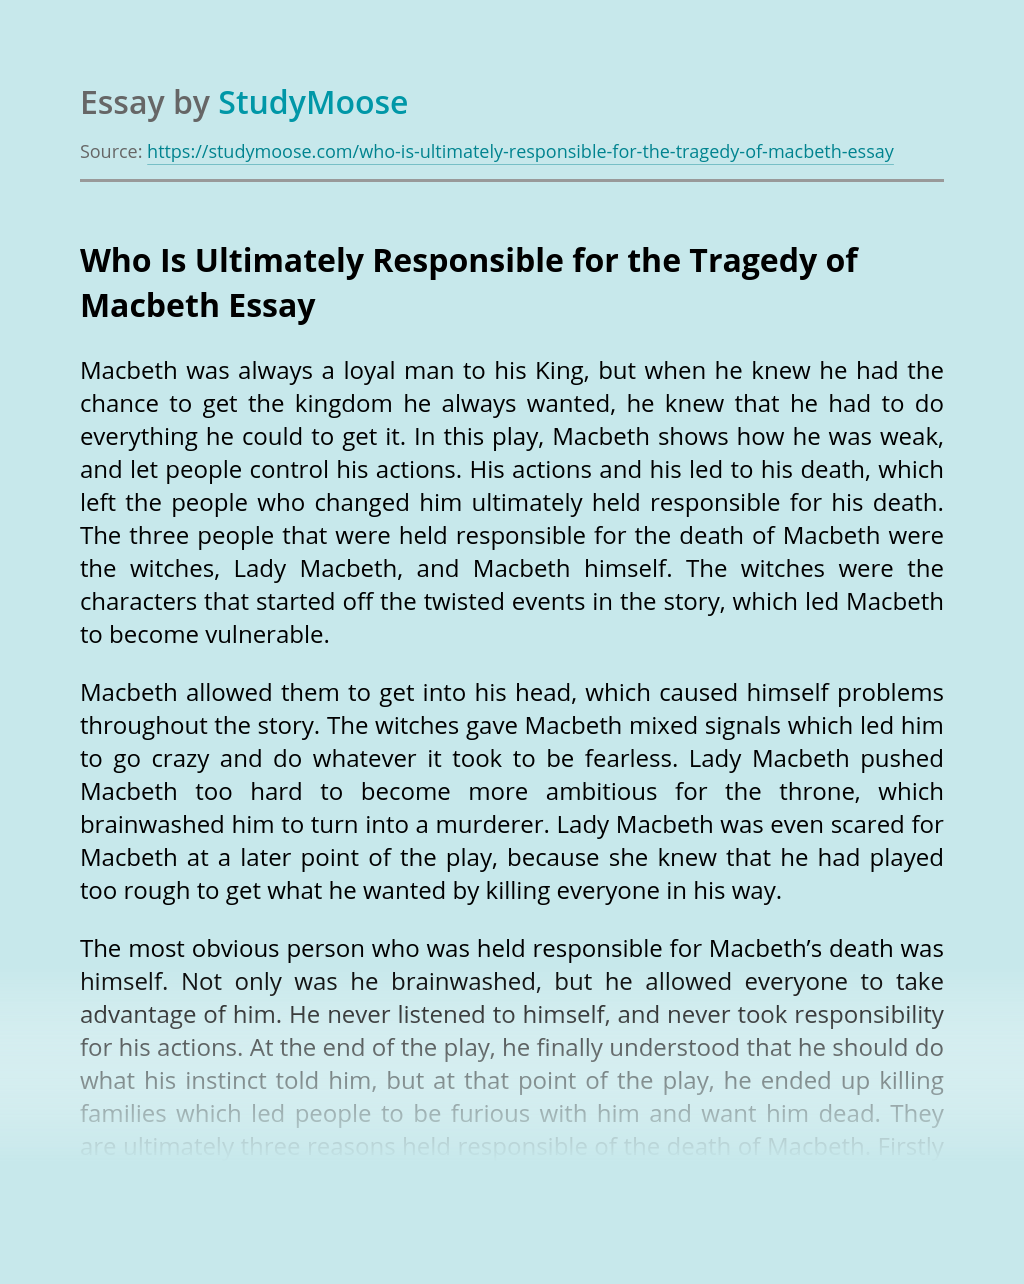 Who Is Ultimately Responsible for the Tragedy of Macbeth